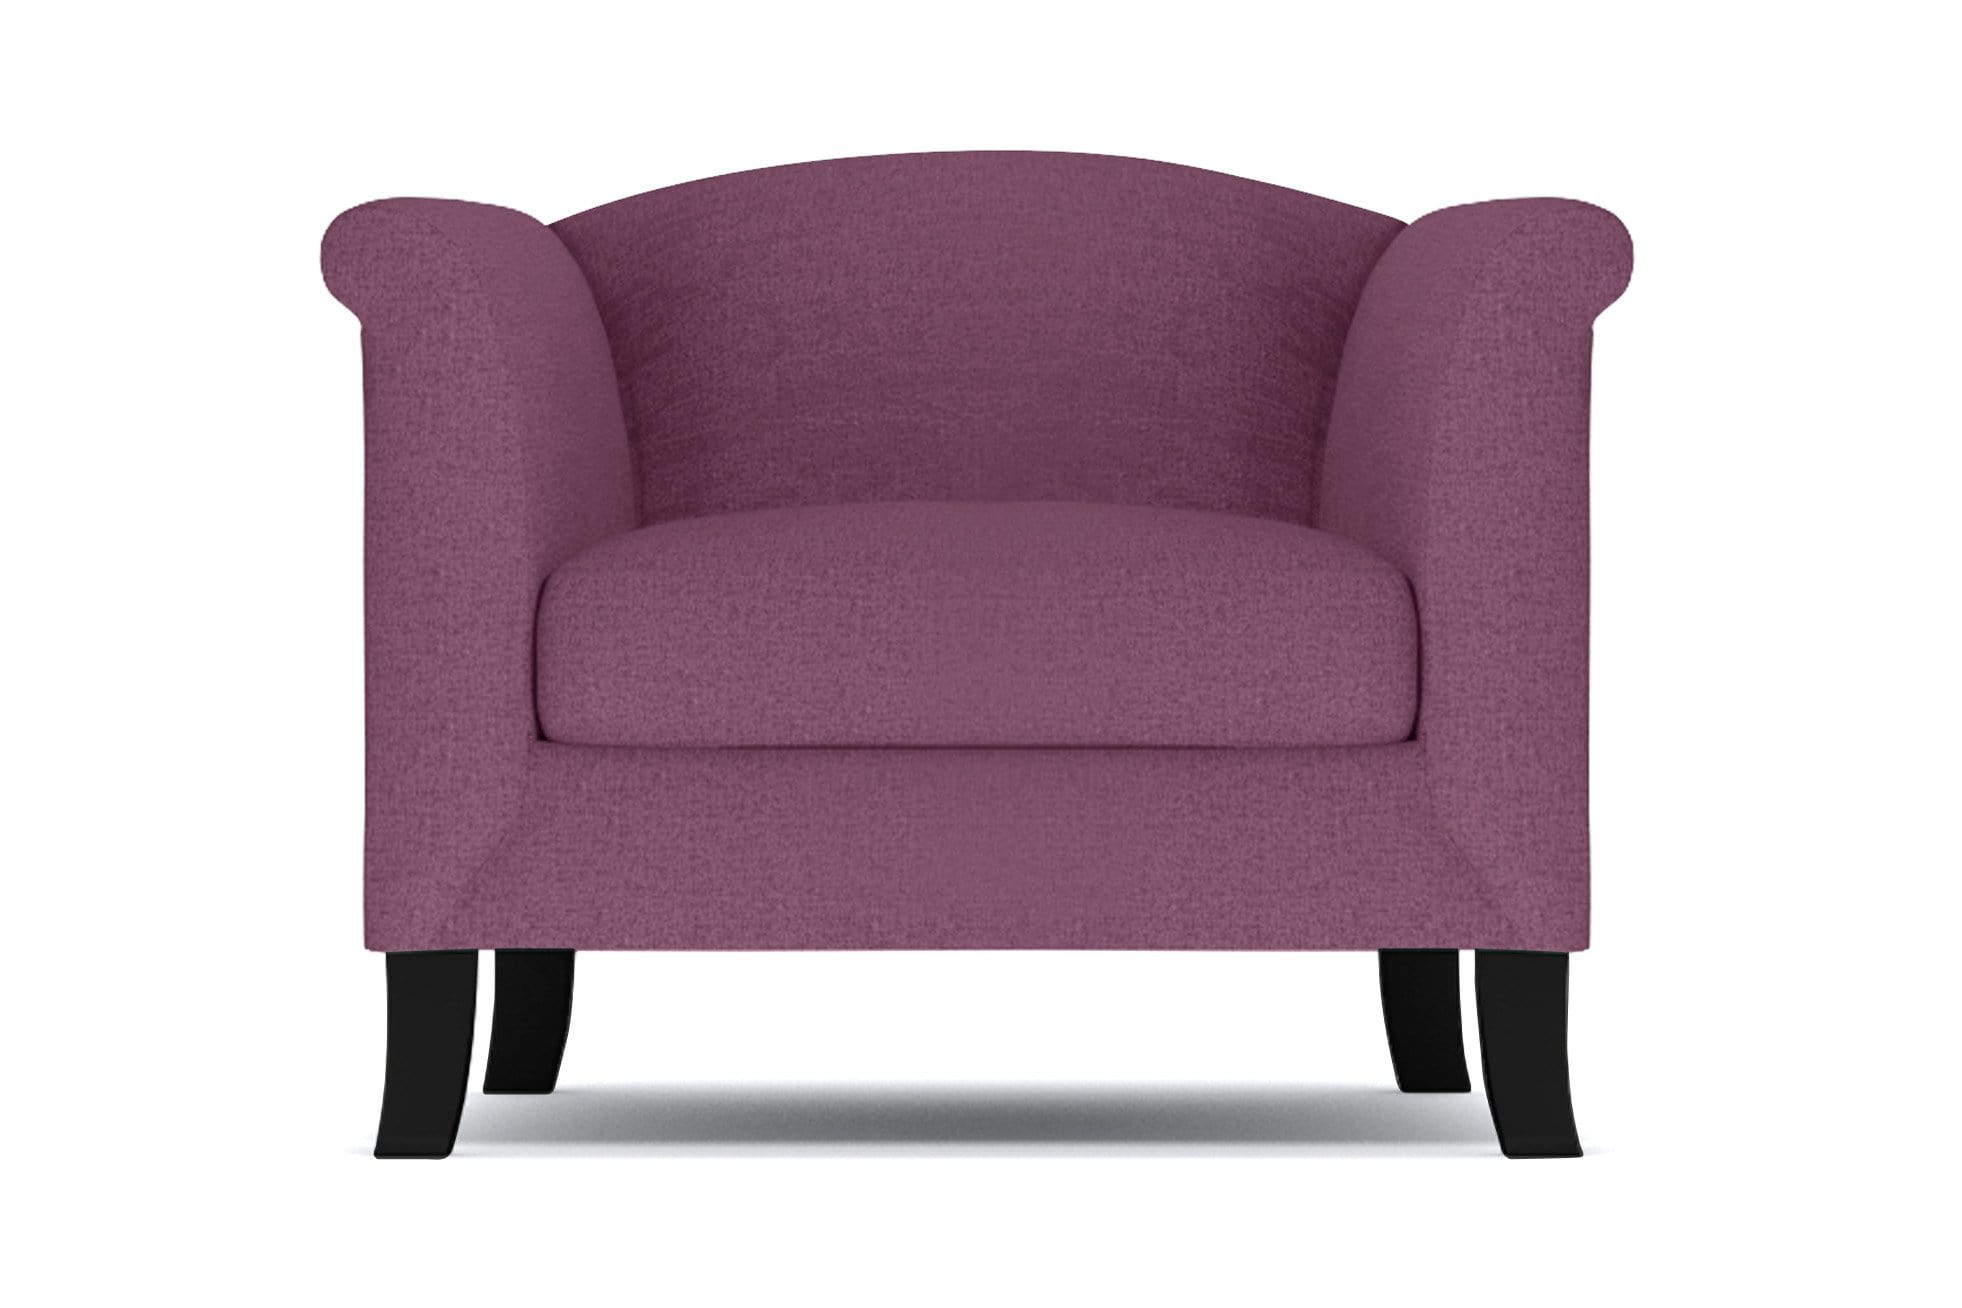 Albright_Chair__Purple___Accent_Chair__Furniture_sold_by_Apt2B